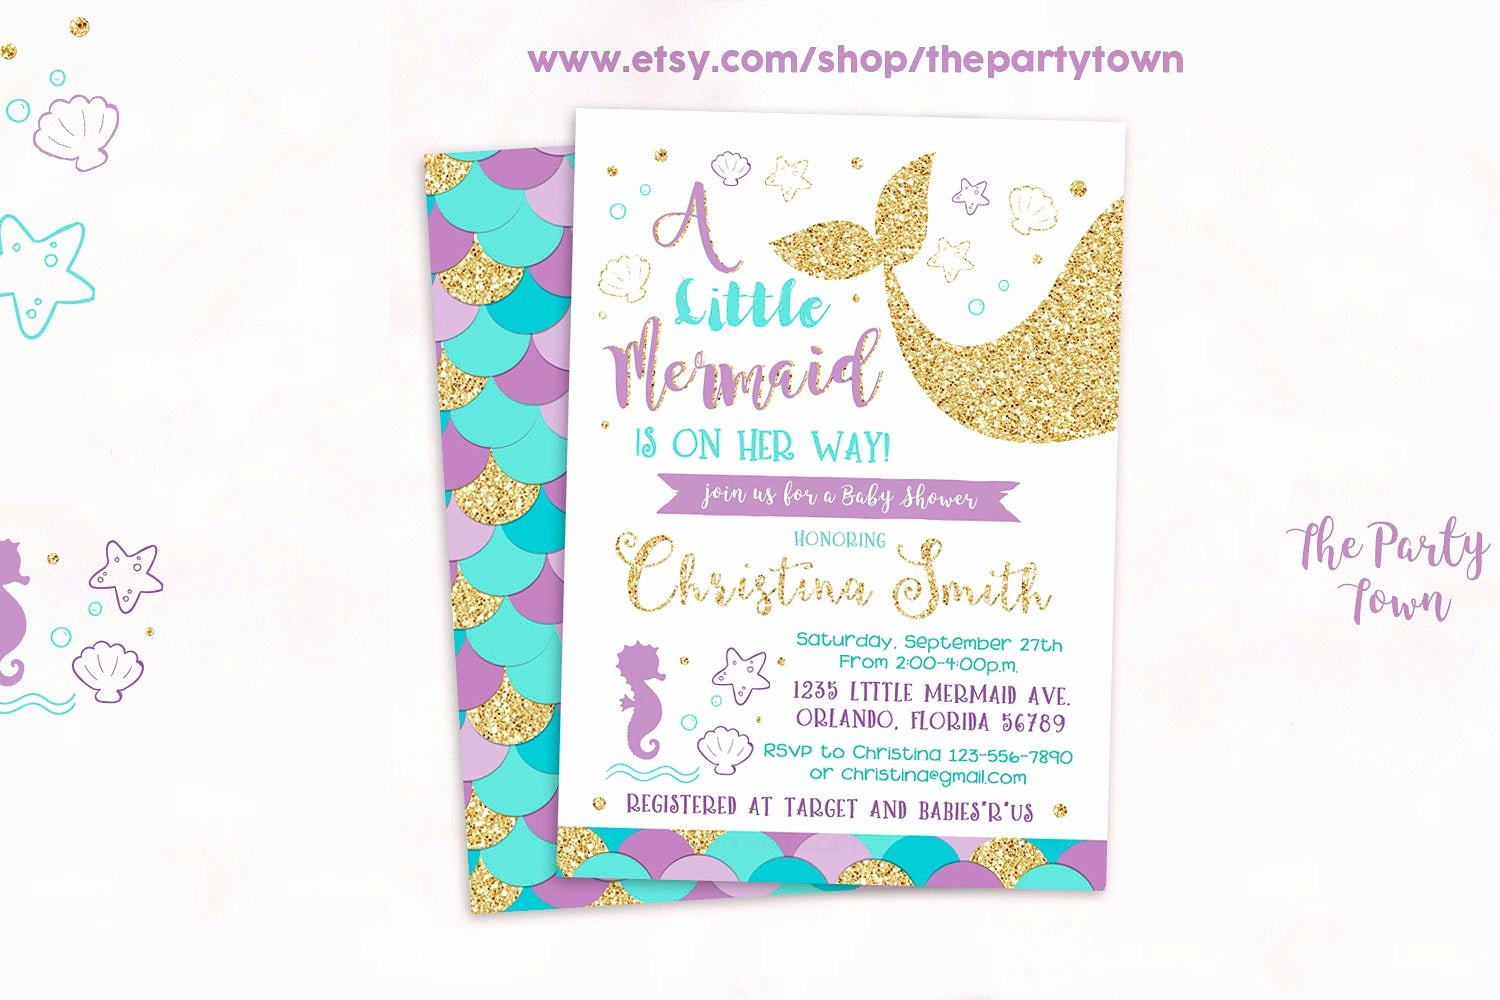 Mermaid Baby Shower Invitations Elegant Mermaid Baby Shower Invitation Little Mermaid Baby Shower